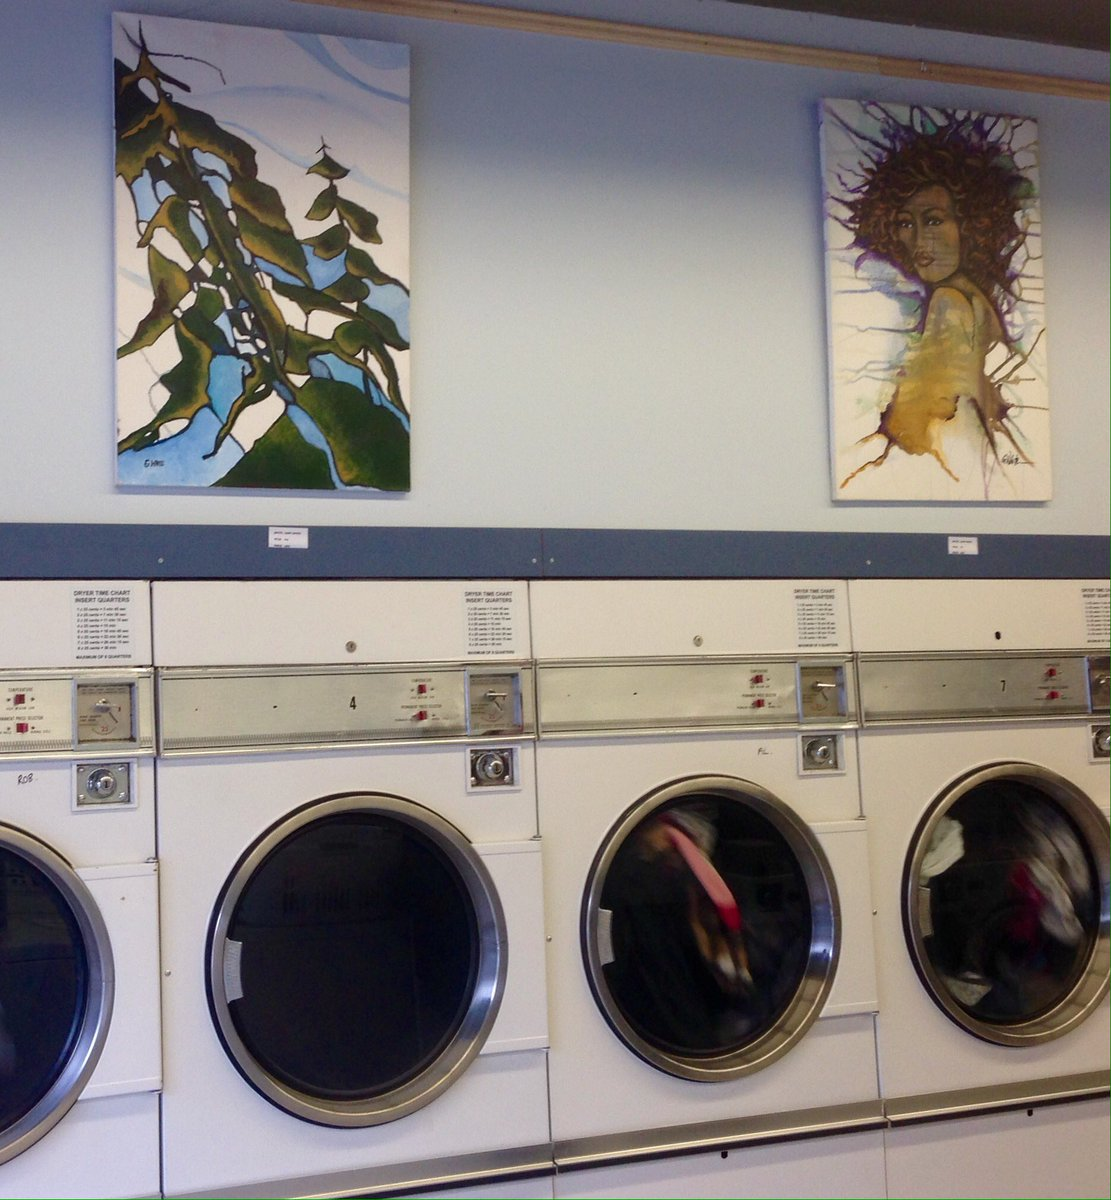 LUX LAUNDROMAT DOUBLES AS AN ART GALLERY